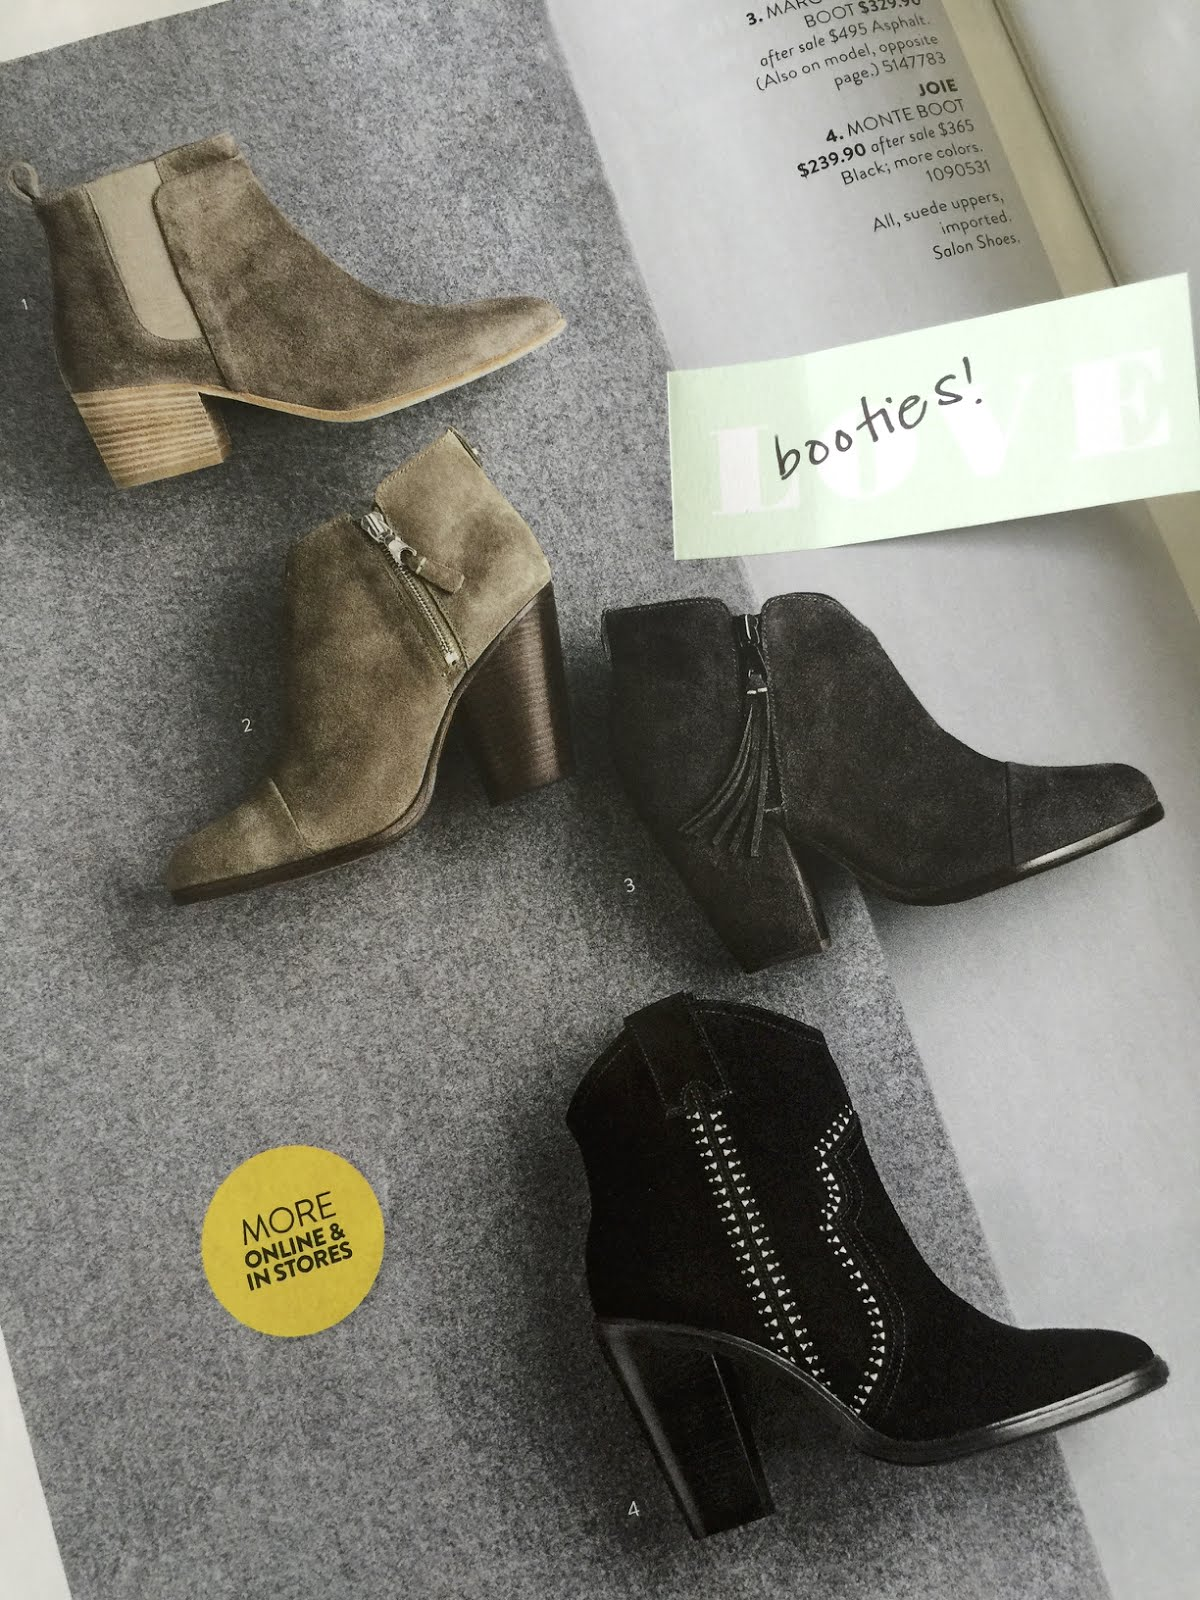 5f9f032e256 I'm loving these booties, but #2 (Rag & Bone) & #3 (Rag & Bone) look very  similar to my Sole Society booties already in my closet from last year and  they're ...